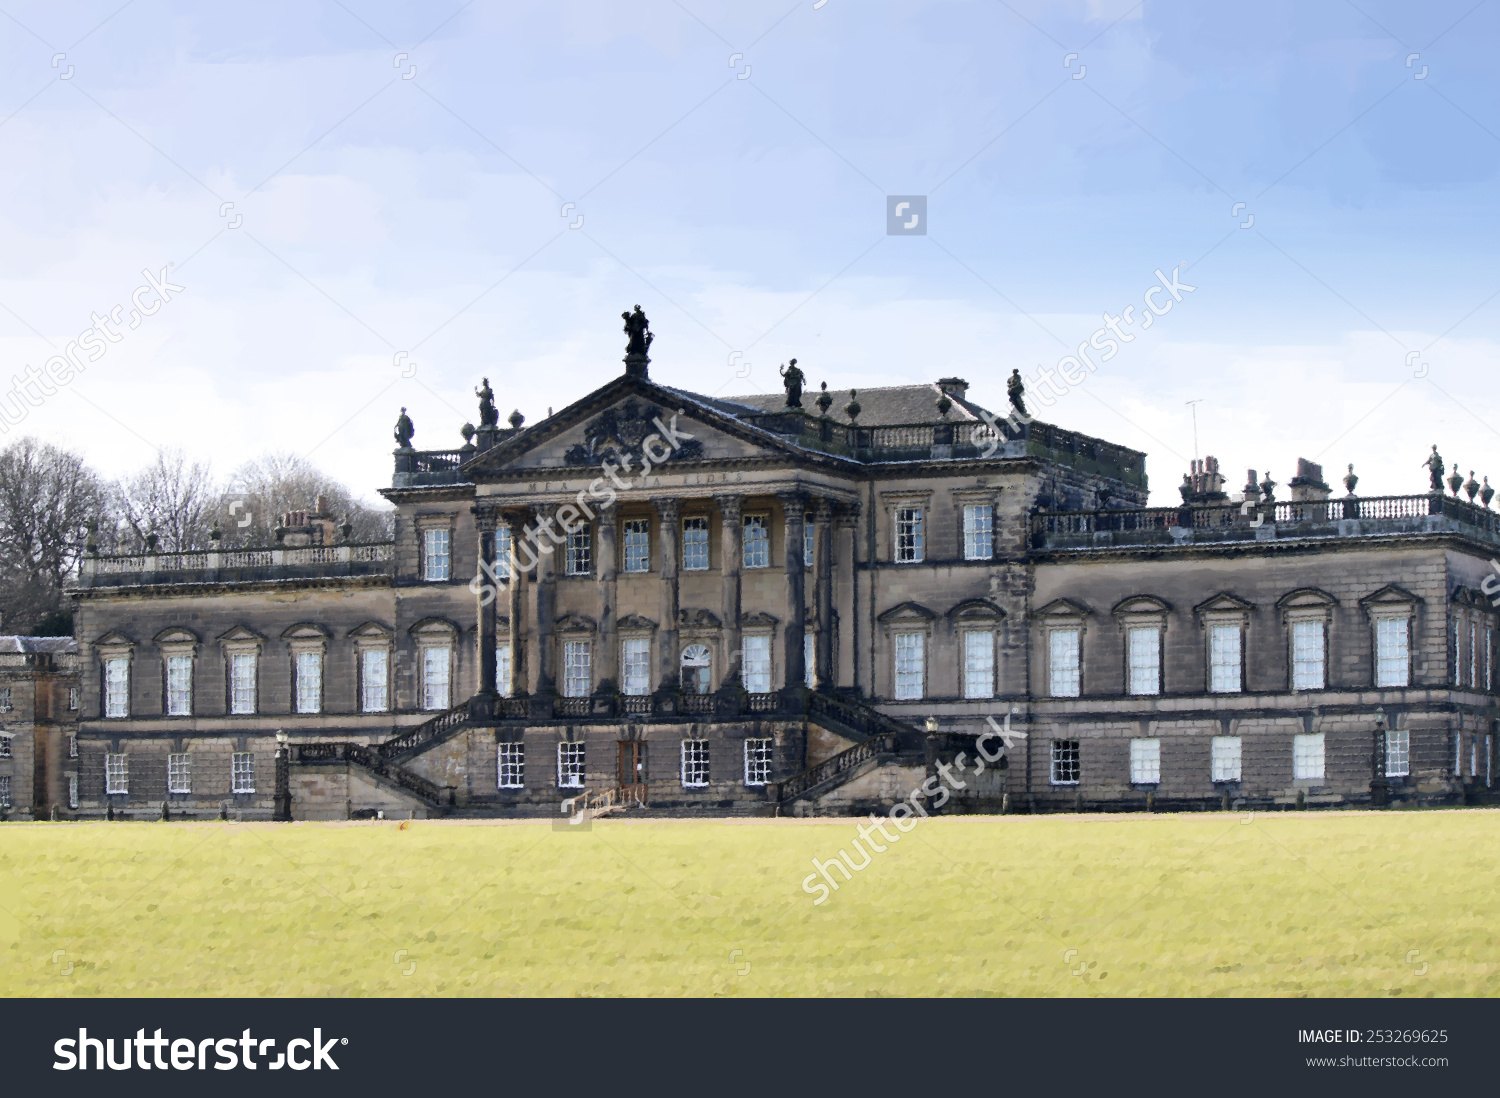 Digital Painting Of Wentworth Woodhouse Country House, A Grade 1.